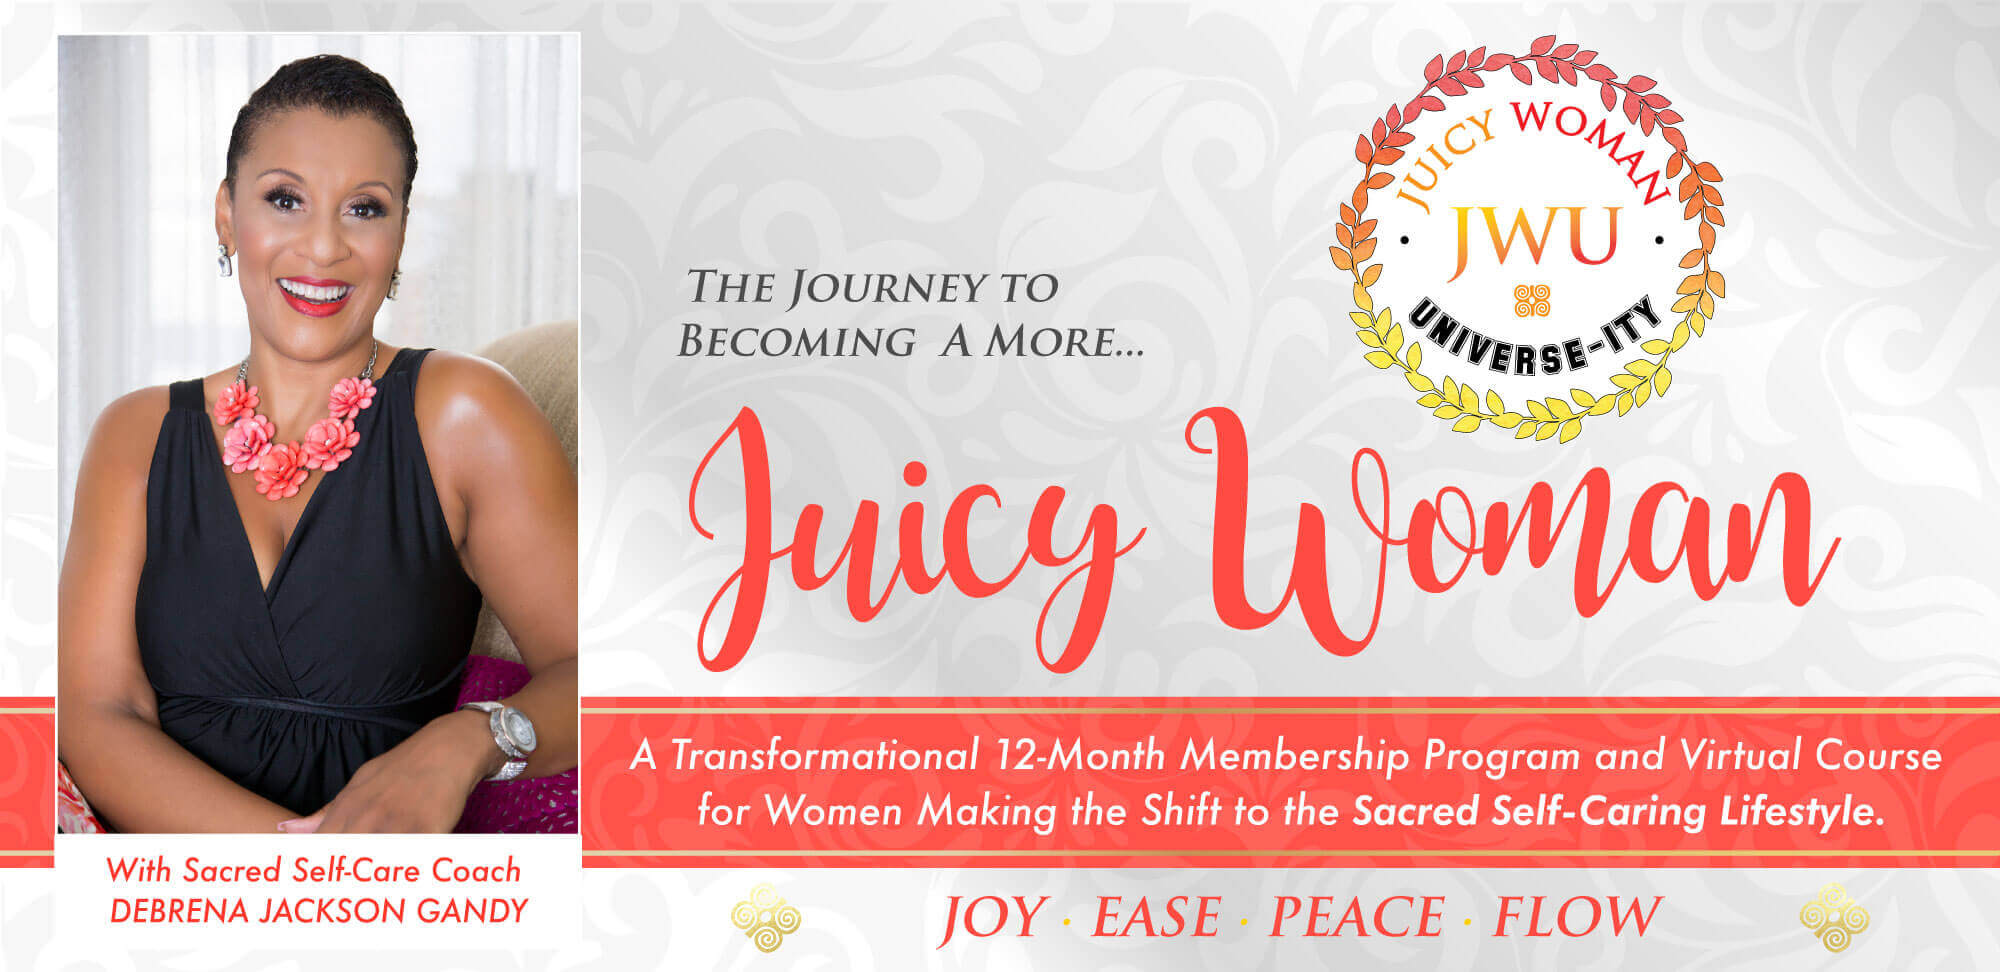 Juicy Woman University: A Transformational 12-Month Membership Program and Virtual Course for Women Making the Shift to the Sacred Self-Caring Lifestyle.